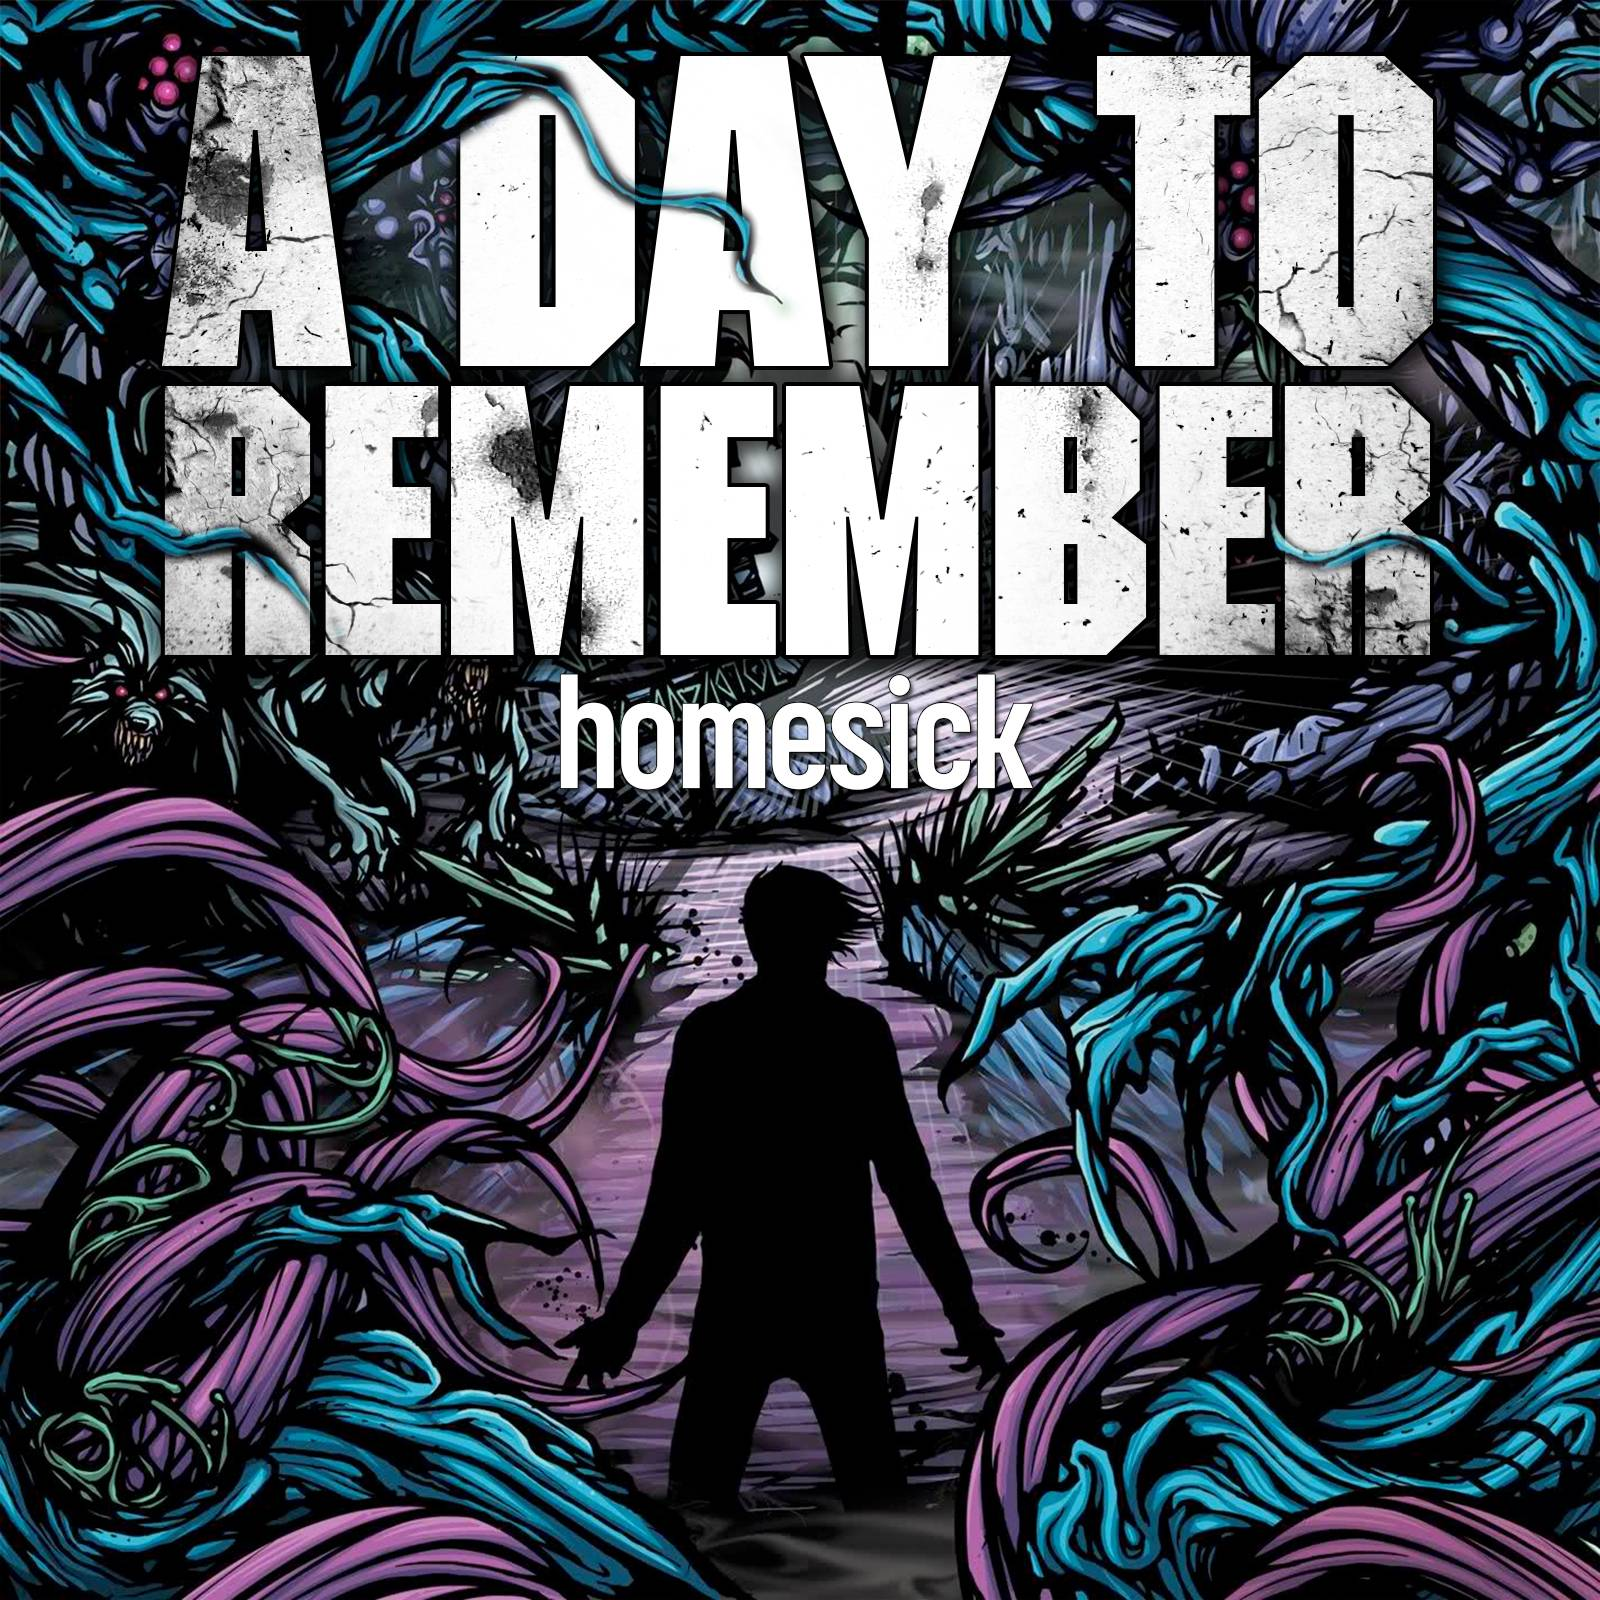 A Day To Remember Homesick Wallpapers - Wallpaper Cave A Day To Remember Homesick Album Cover